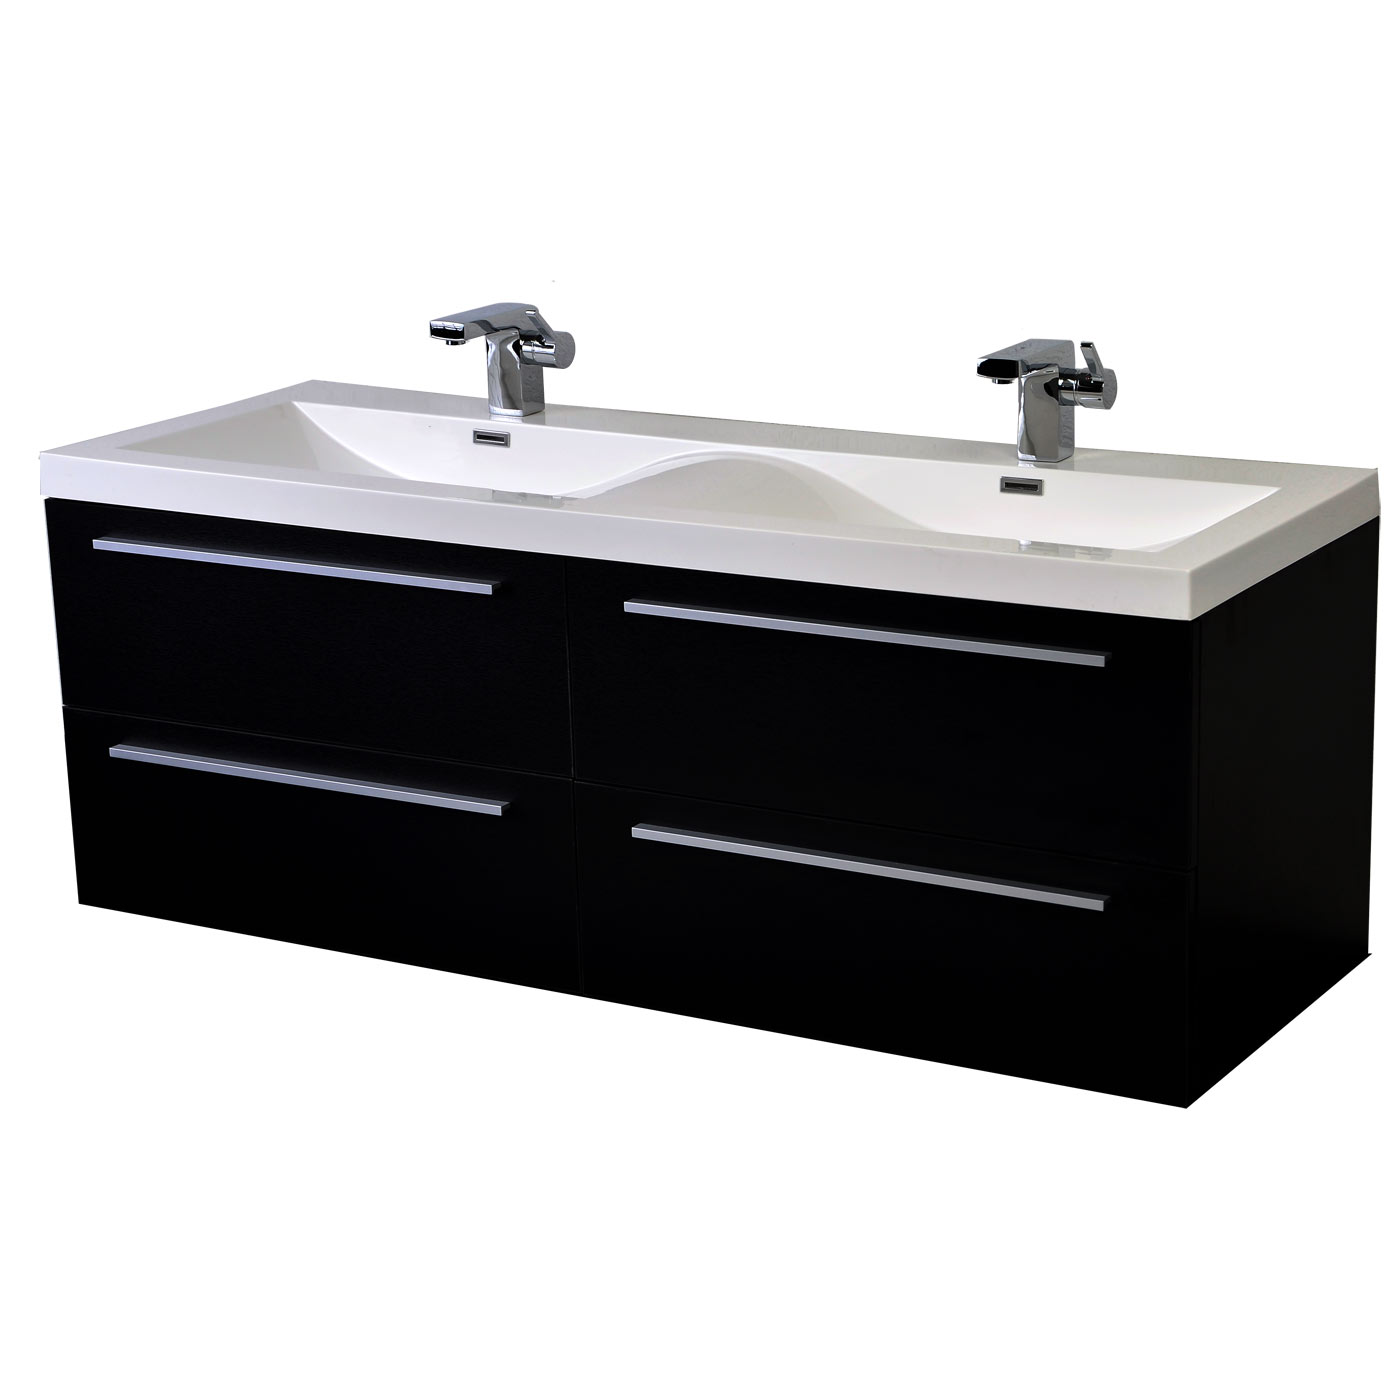 57 inch modern double sink vanity set with wavy sinks for Modern bathroom sink and vanity